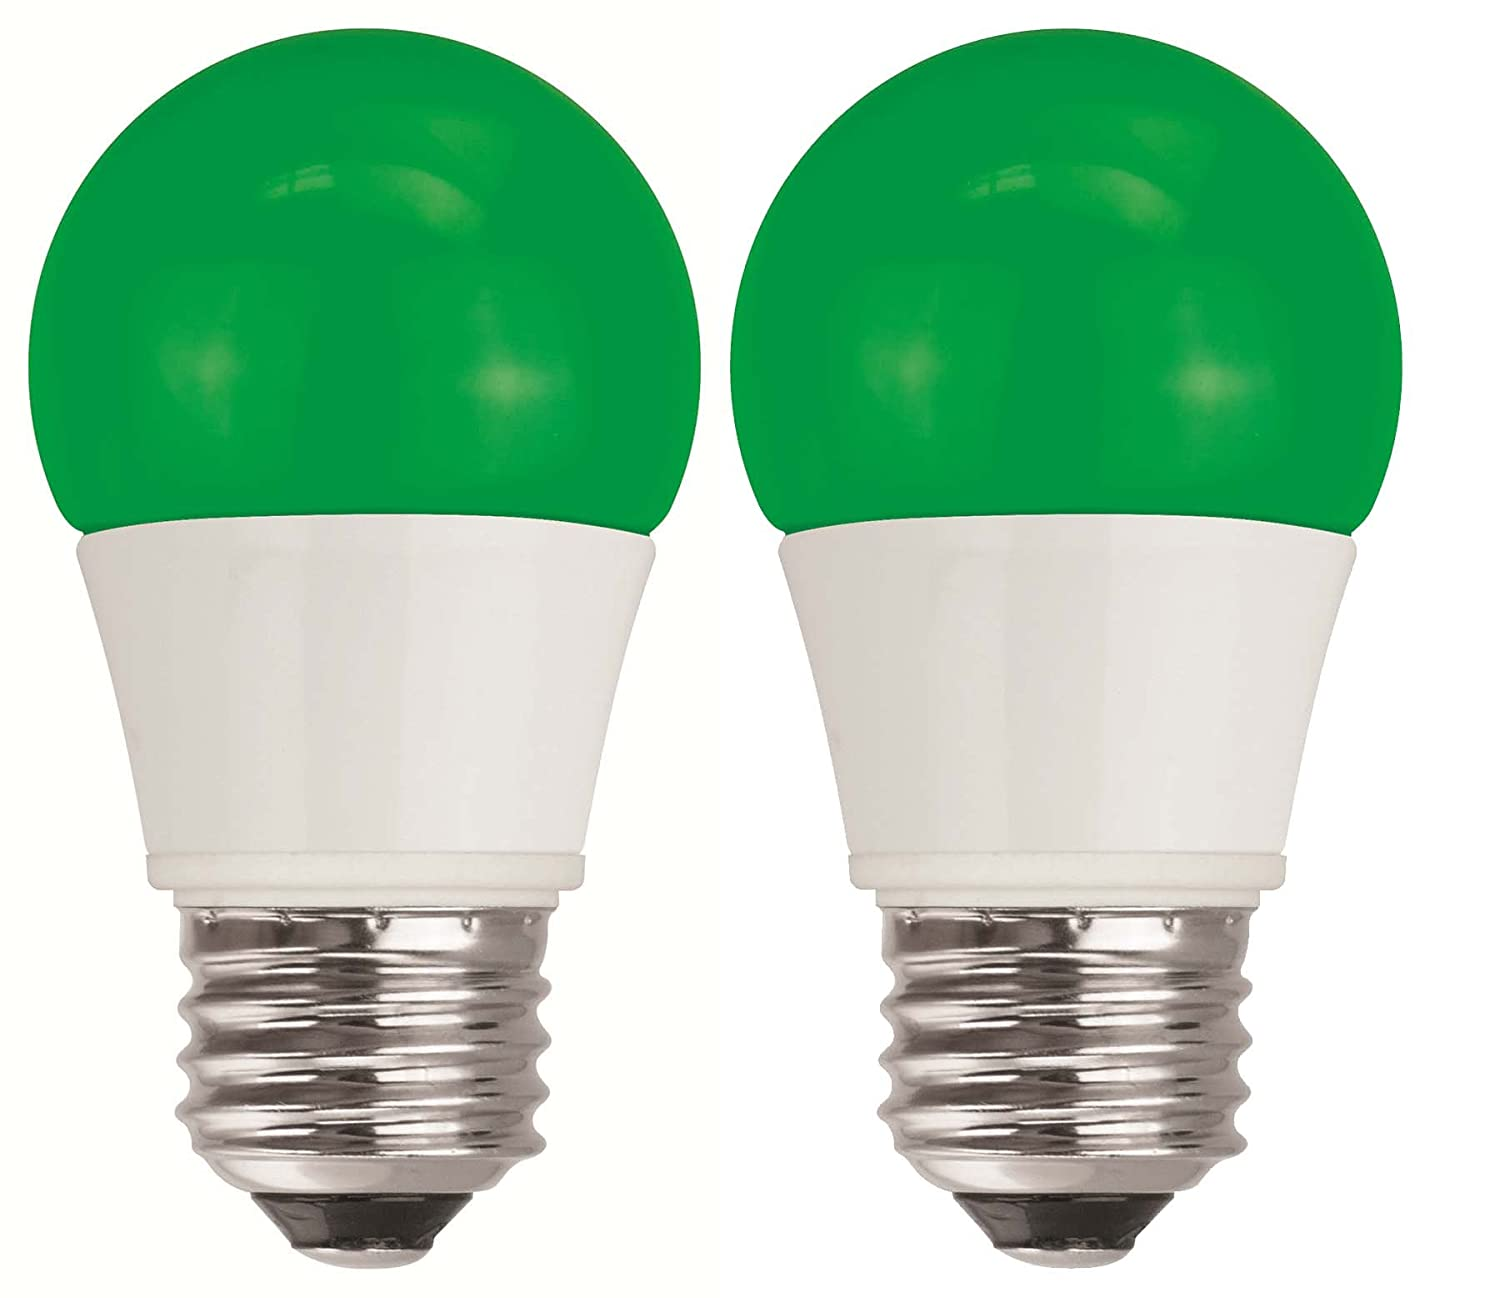 TCP 5W Equivalent Green LED A15 Regular Shaped Light Bulbs, Non ...